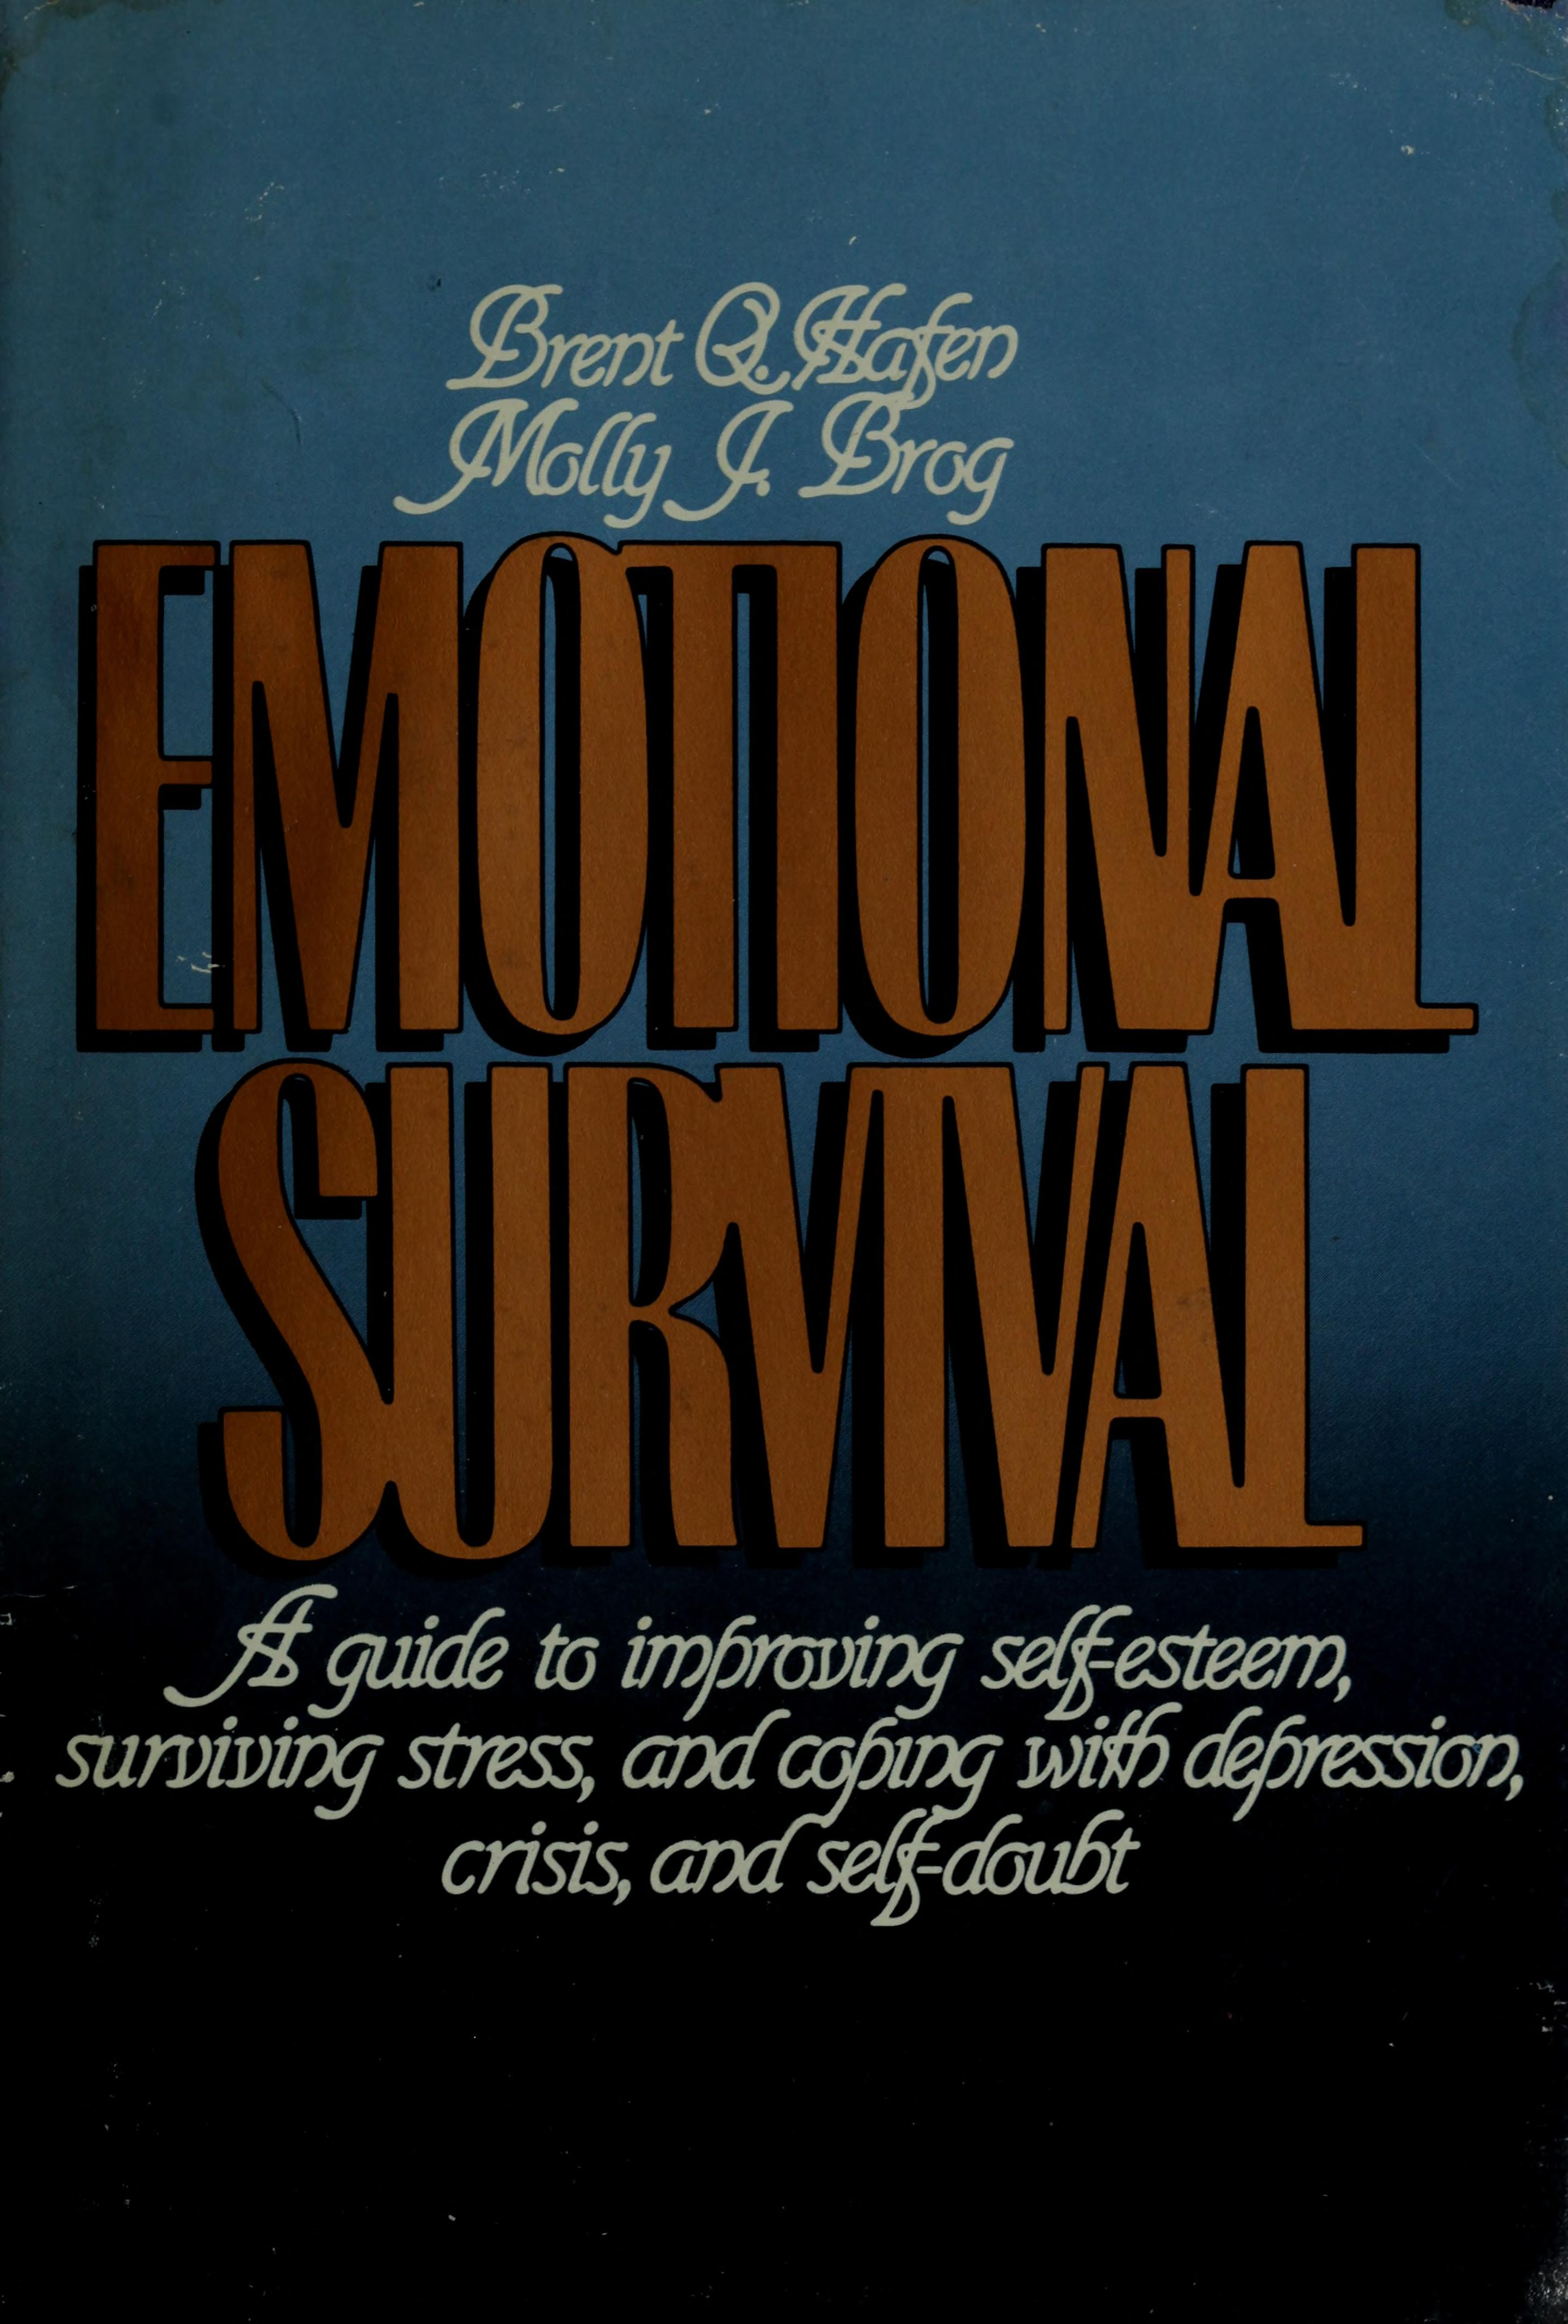 eBook Emotional survival download | online | audio id:17oyh7e